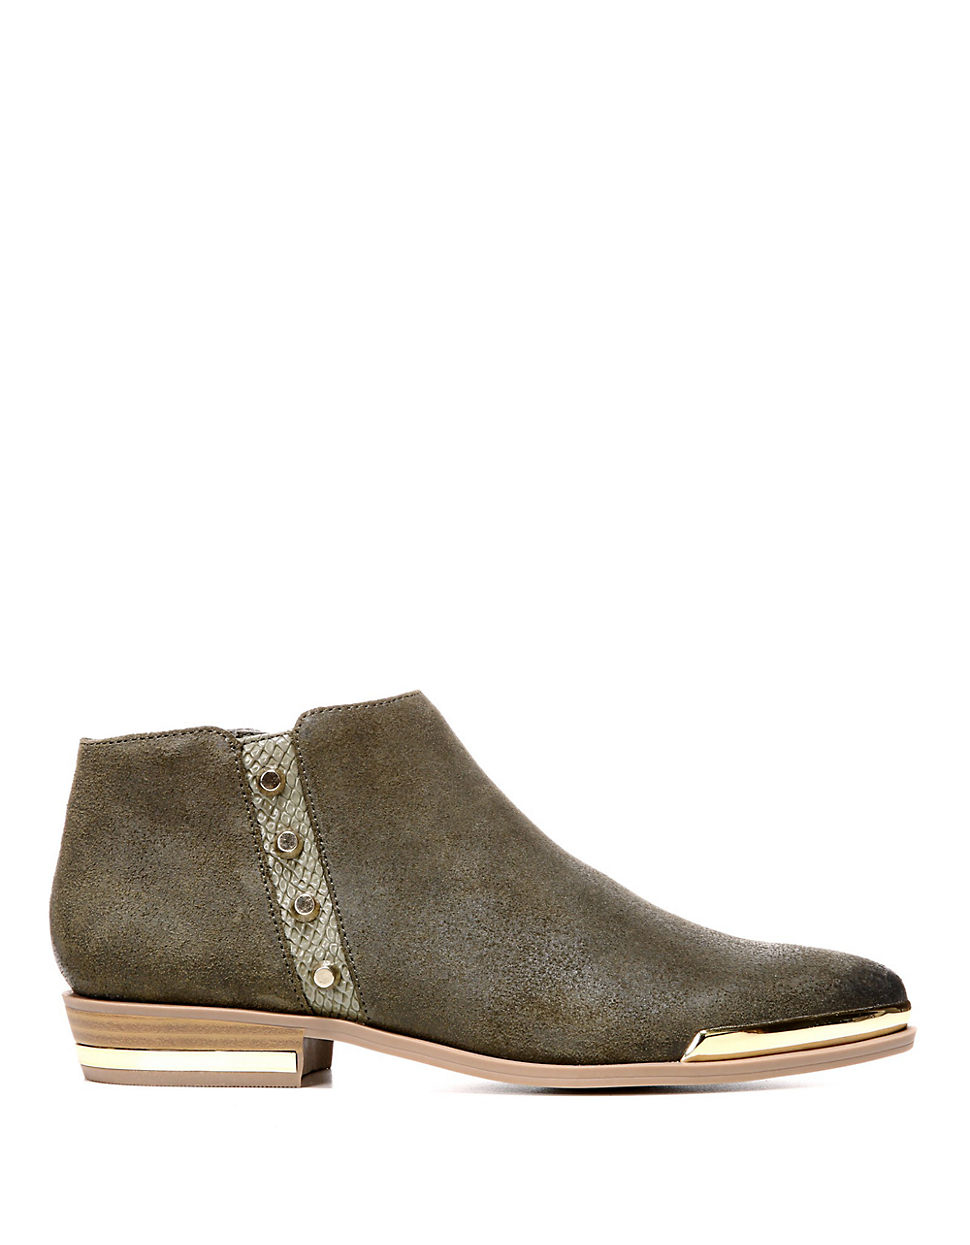 Fergie Indigo Leather Ankle Boots in Green | Lyst Fergie Shoes